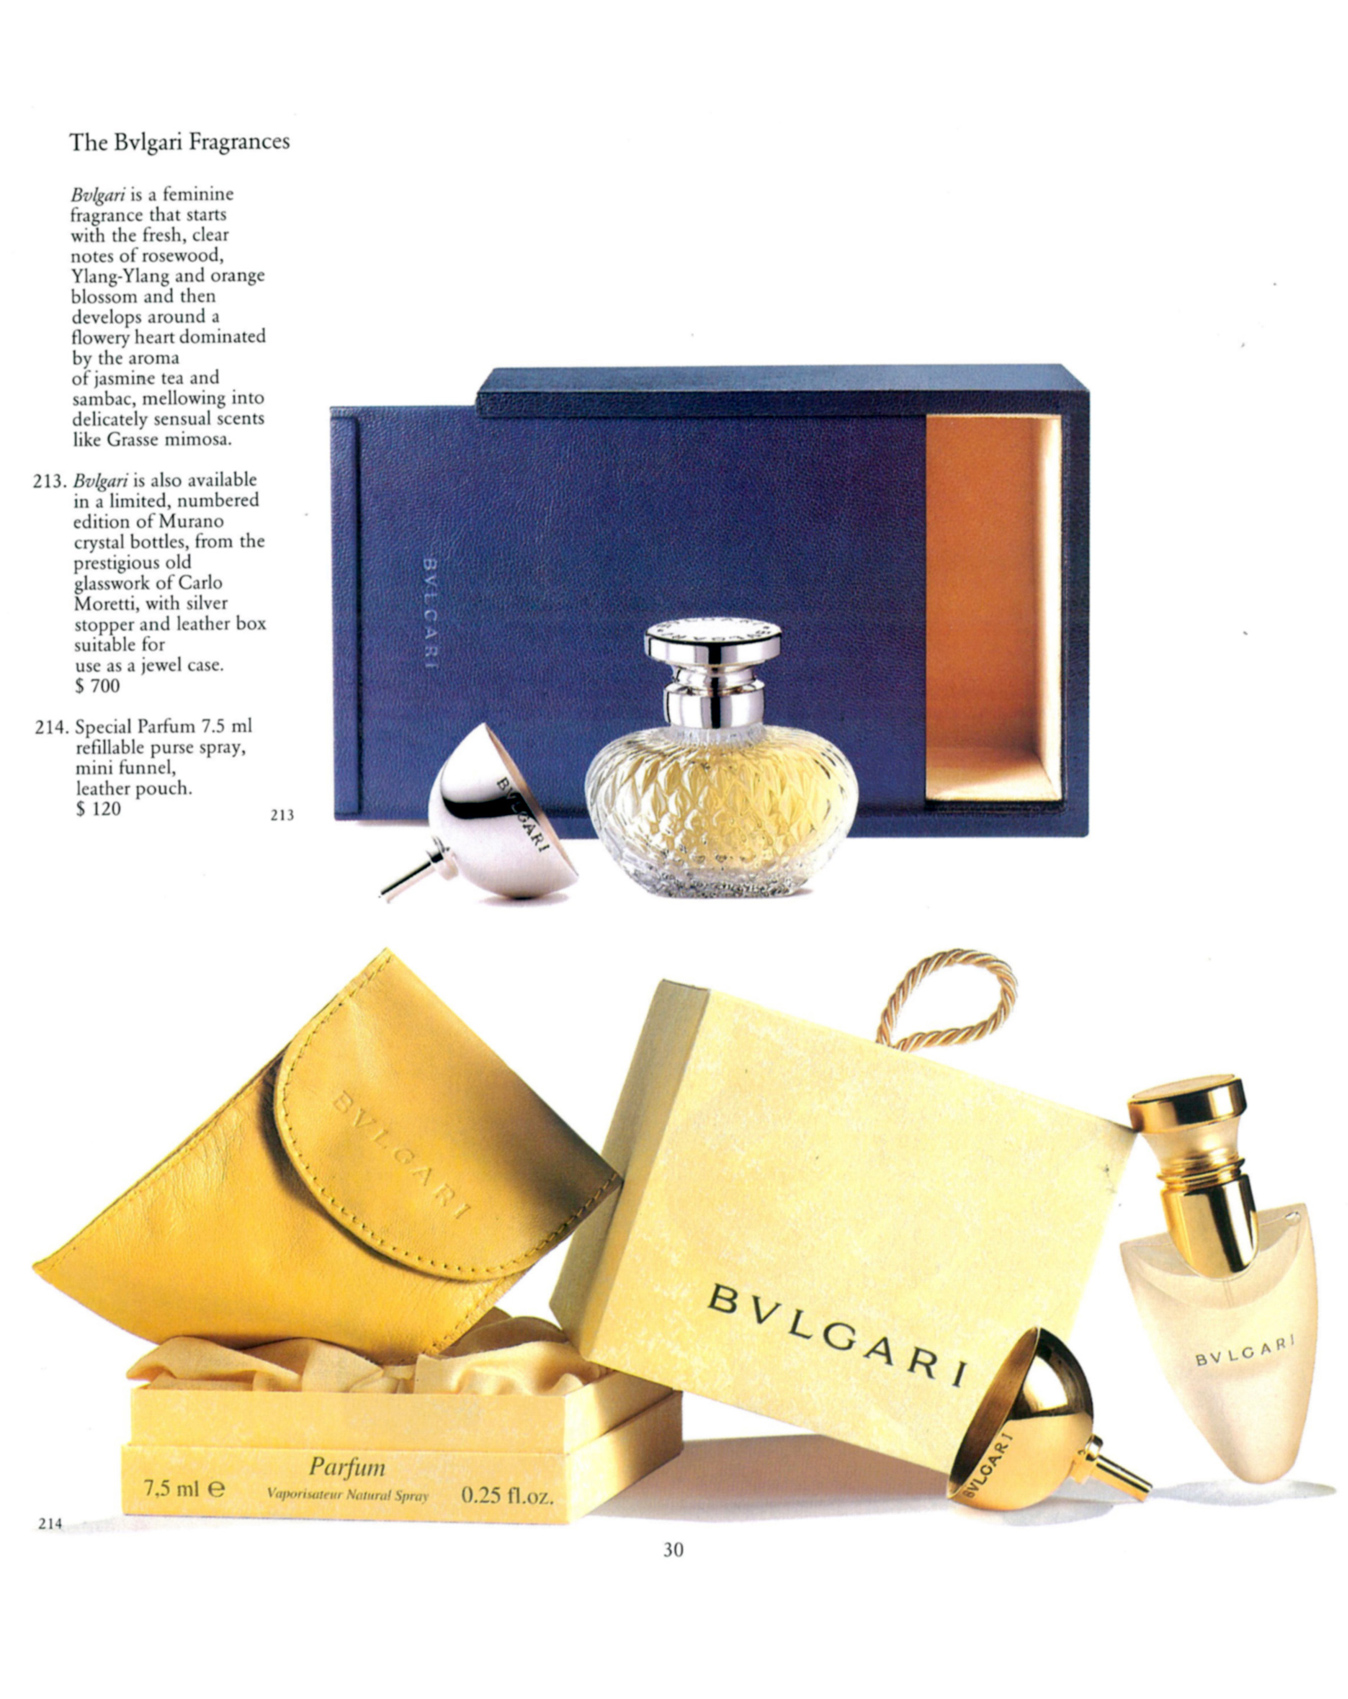 Advertisement Ad Page Catalog Bvlgari Bulgari Murano Italy Crystal Perfume Bottle Carlo Moretti Sterling Silver Numbered Limited Edition Leather Box